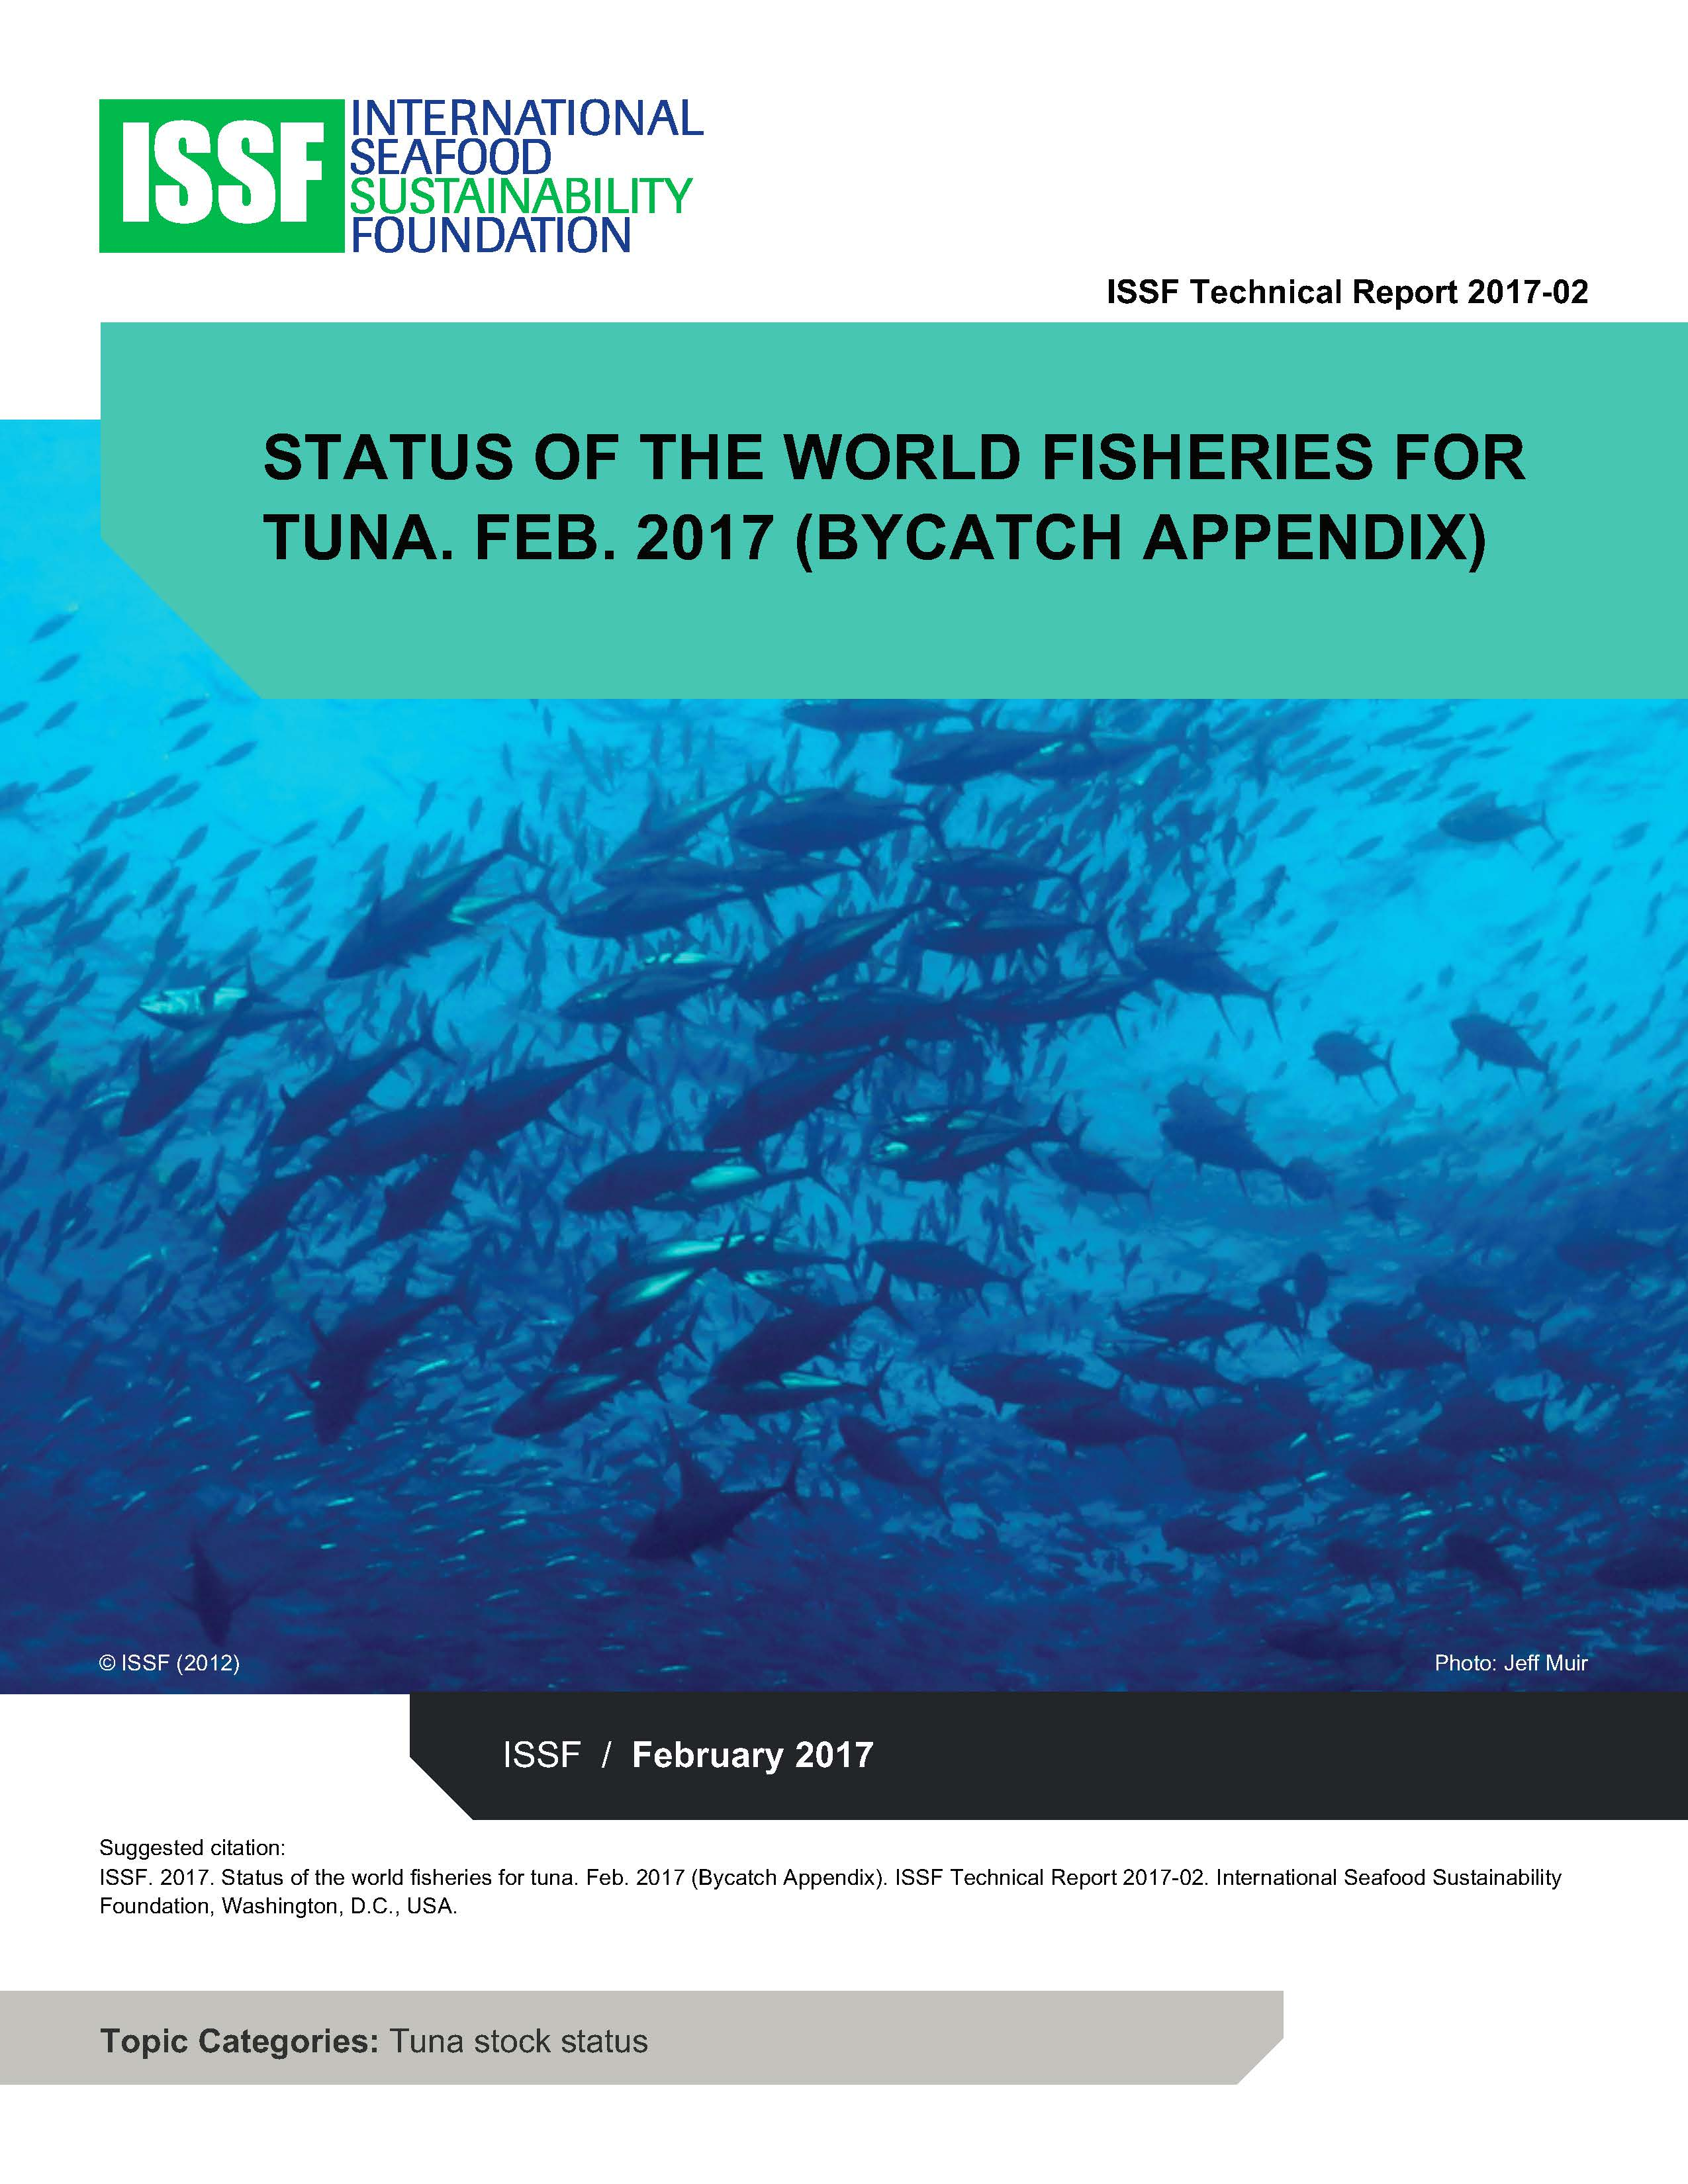 ISSF-2017-02 -Status-of-the-Stocks-Feb 2017-Bycatch-Appendix_Page_1